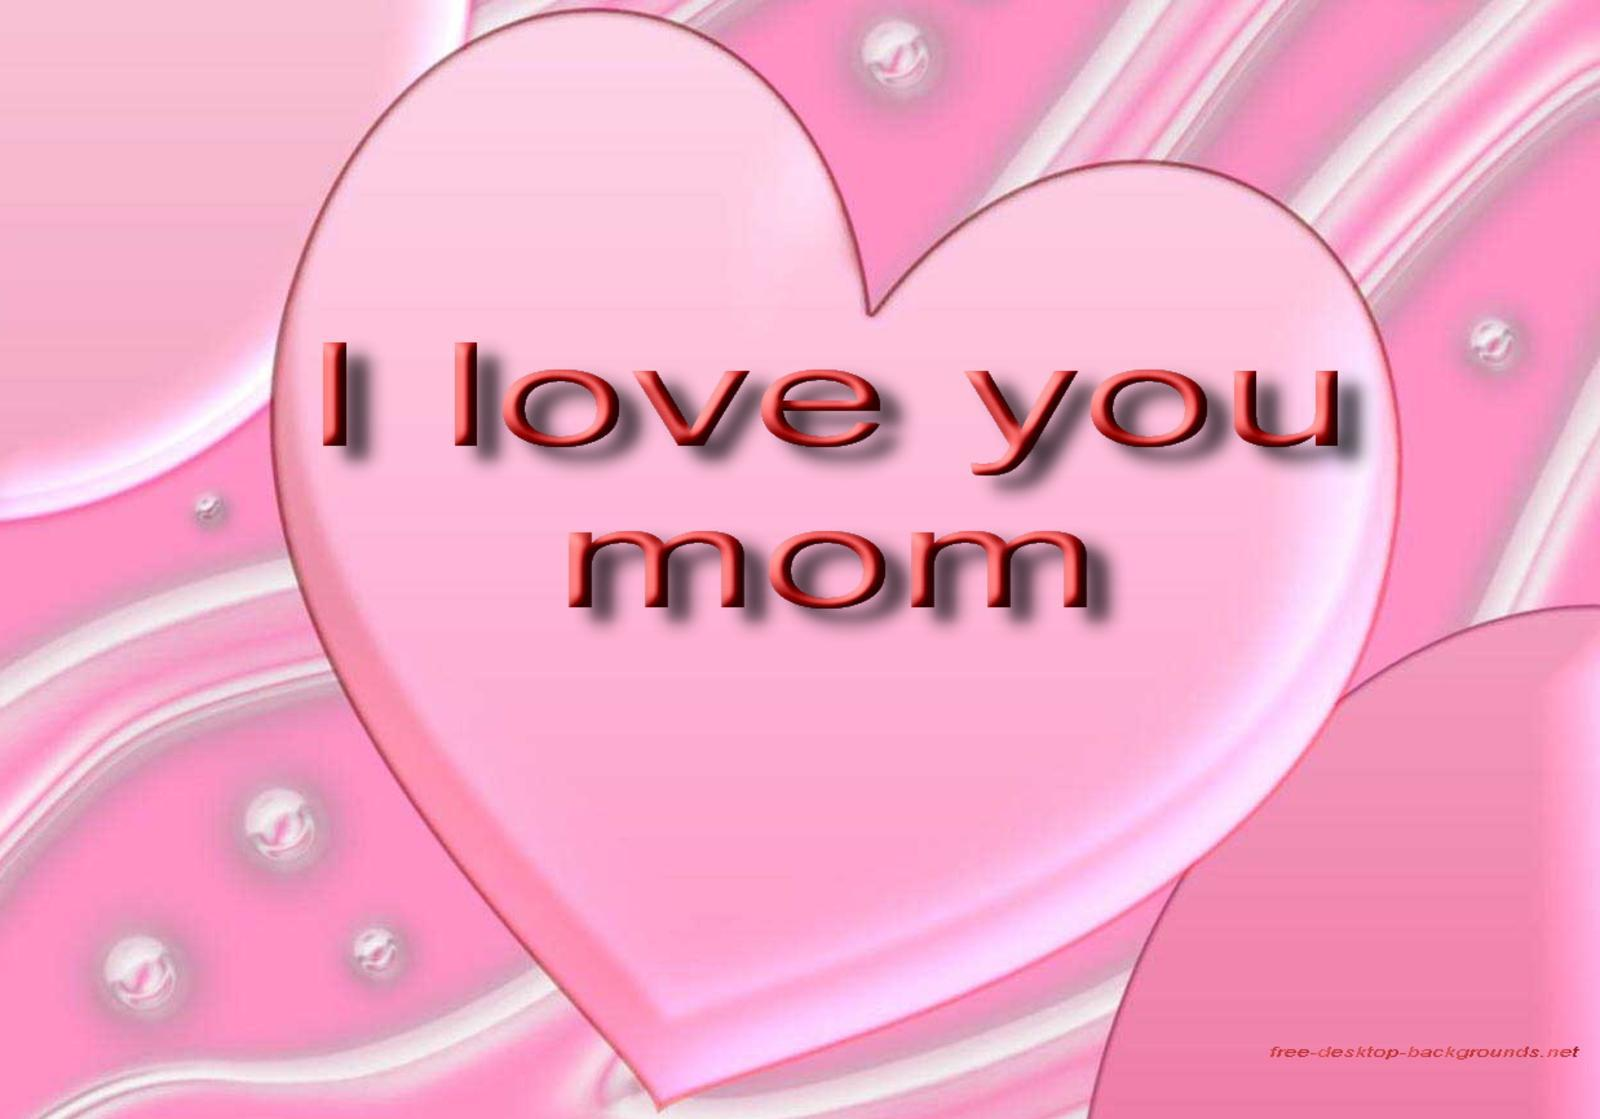 I Luv U Mom Wallpaper Images amp Pictures   Becuo 1600x1119